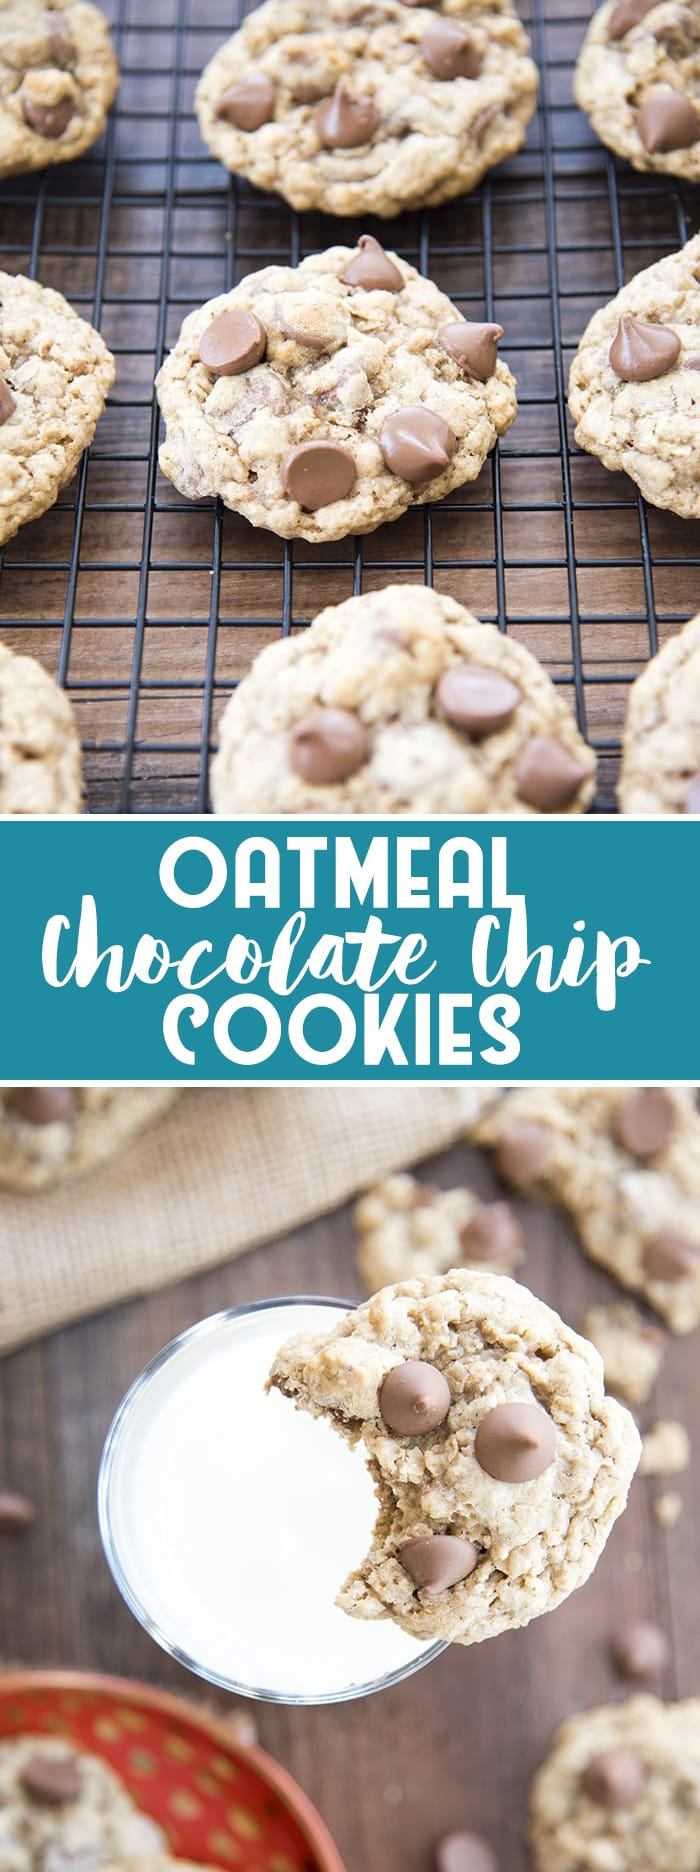 Oatmeal Chocolate Chip Cookies are the perfect chewy, and soft cookies stuffed full of oatmeal and lots of chocolate chips! No chilling the dough!